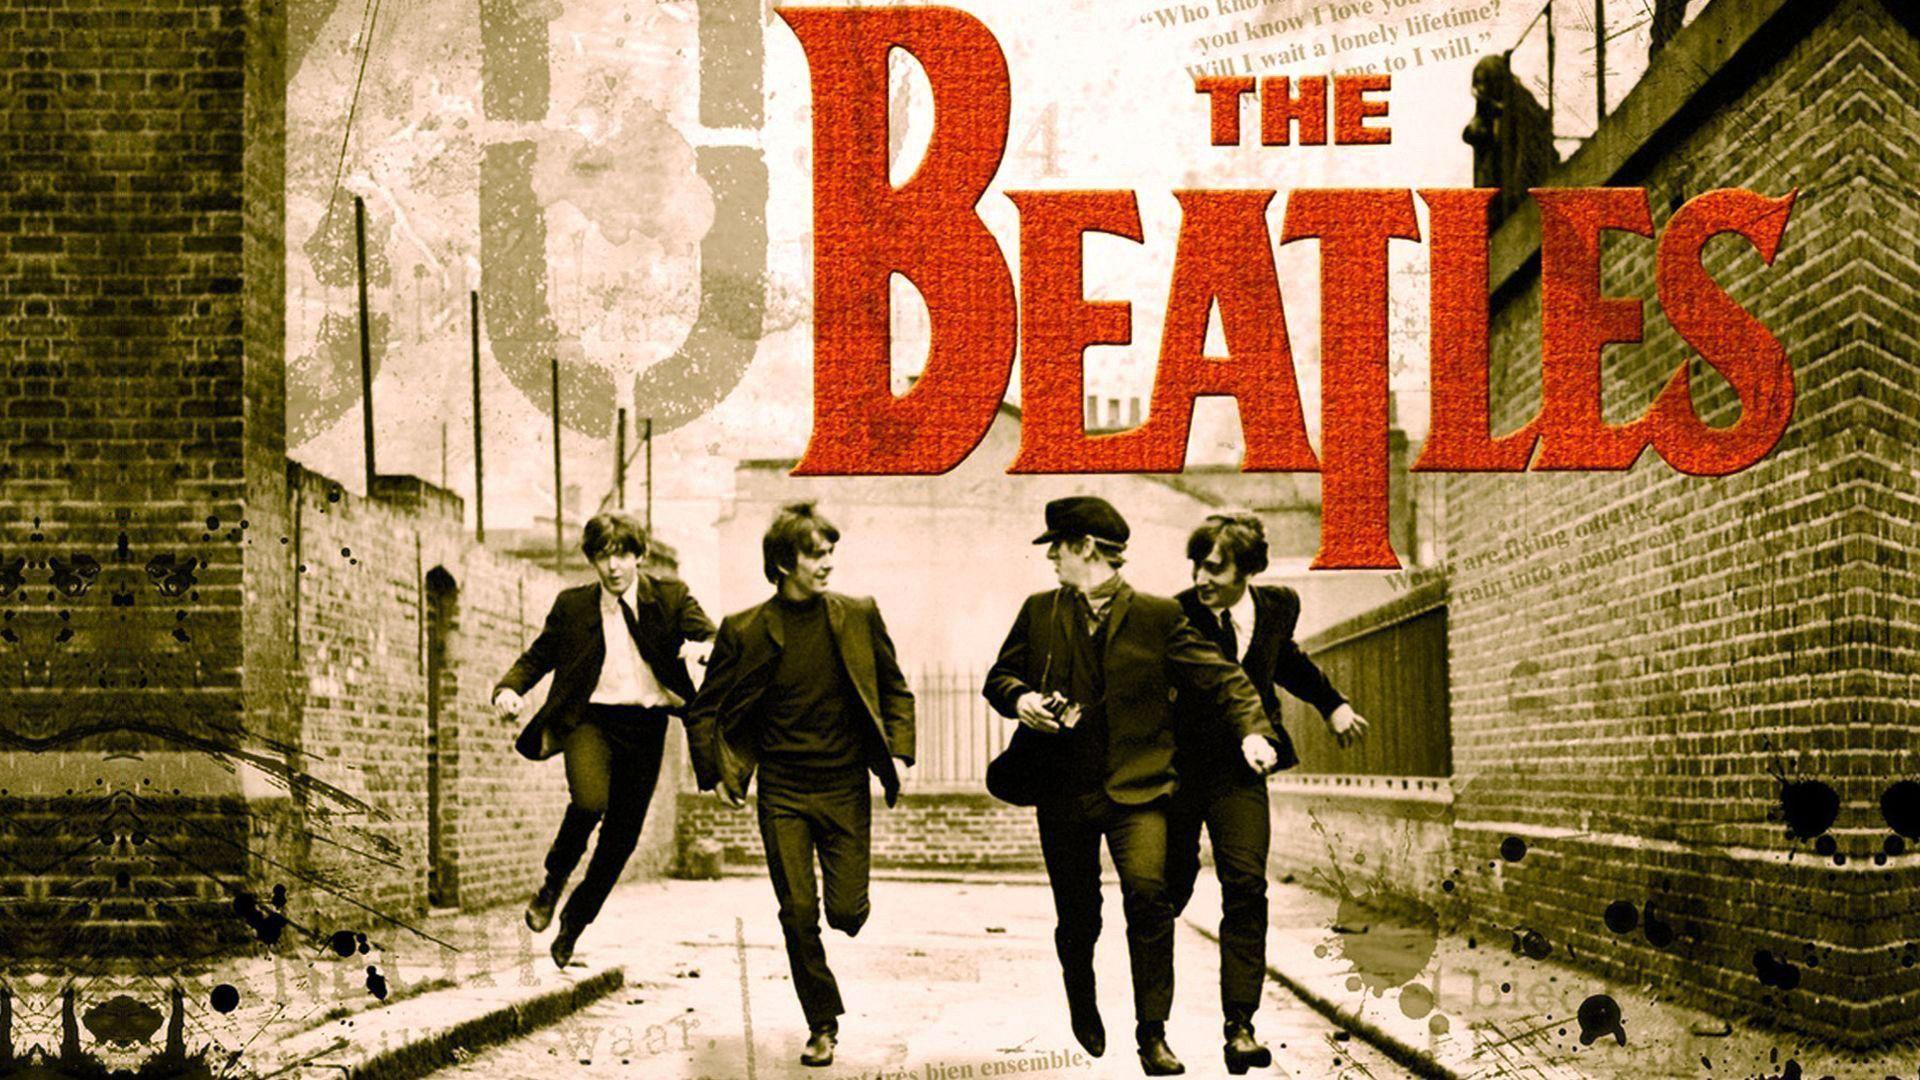 The Beatles Wallpapers Wallpaper Cave